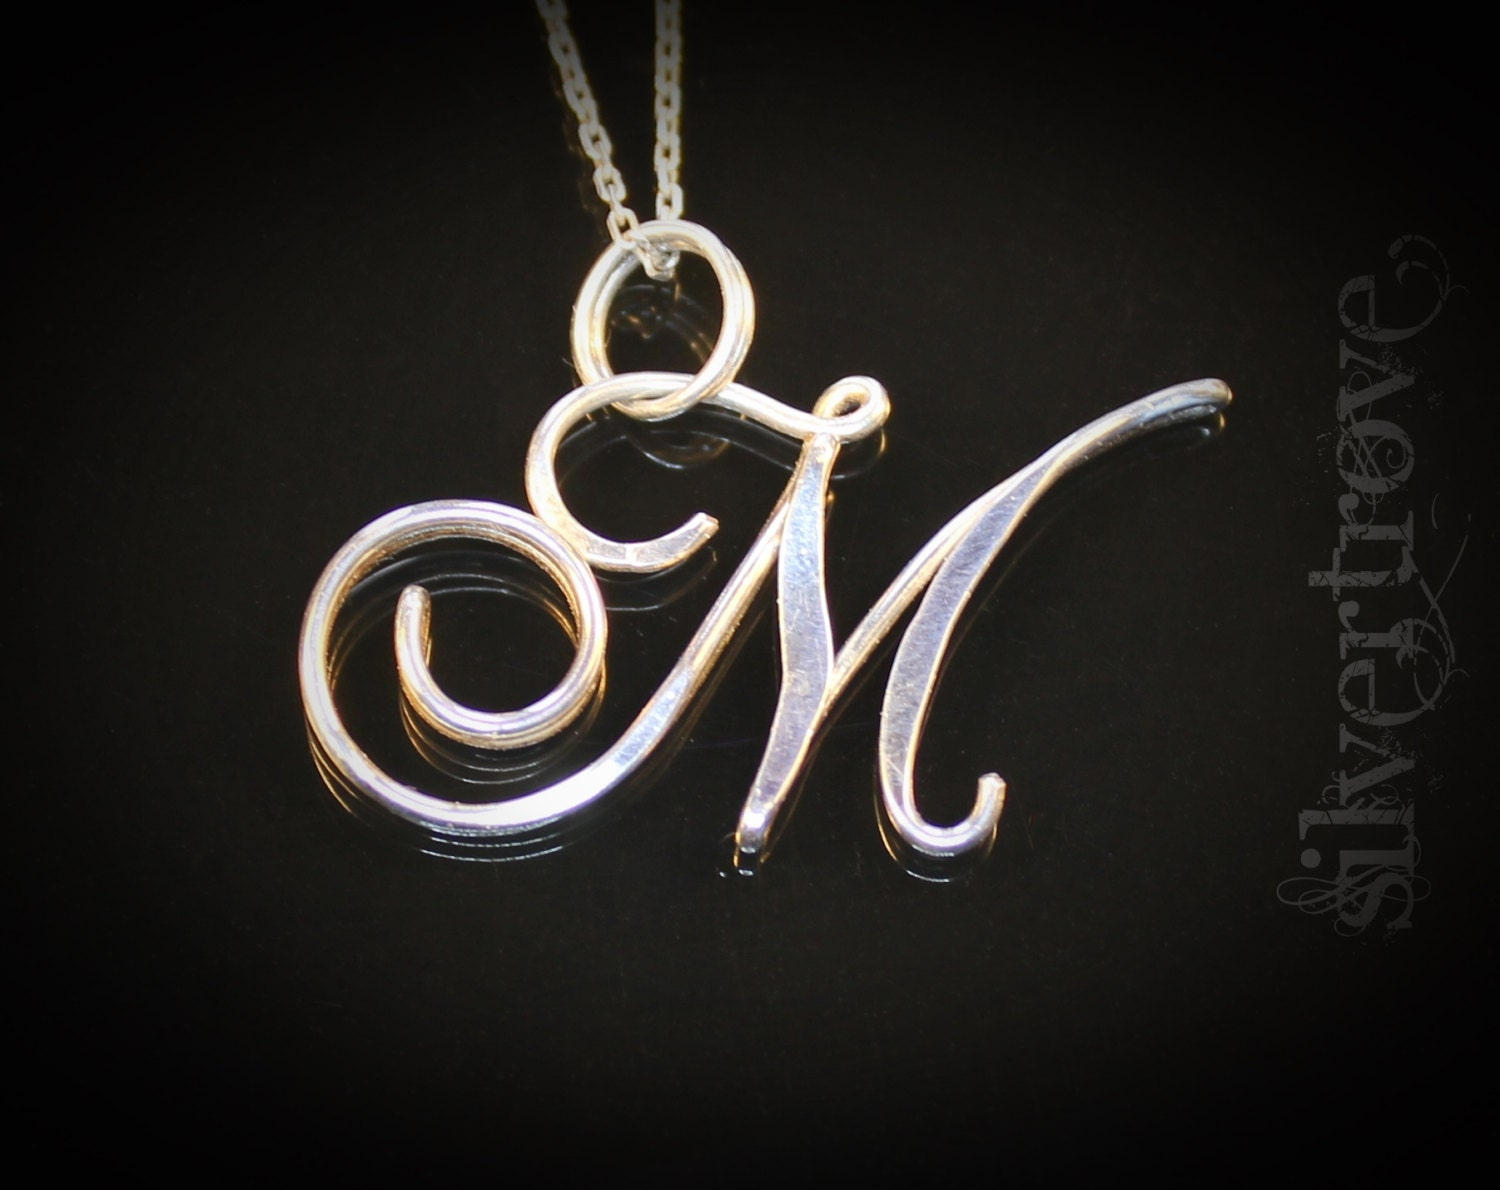 M initial necklace sterling silver pendant by silvertrove for Just my style personalized jewelry studio